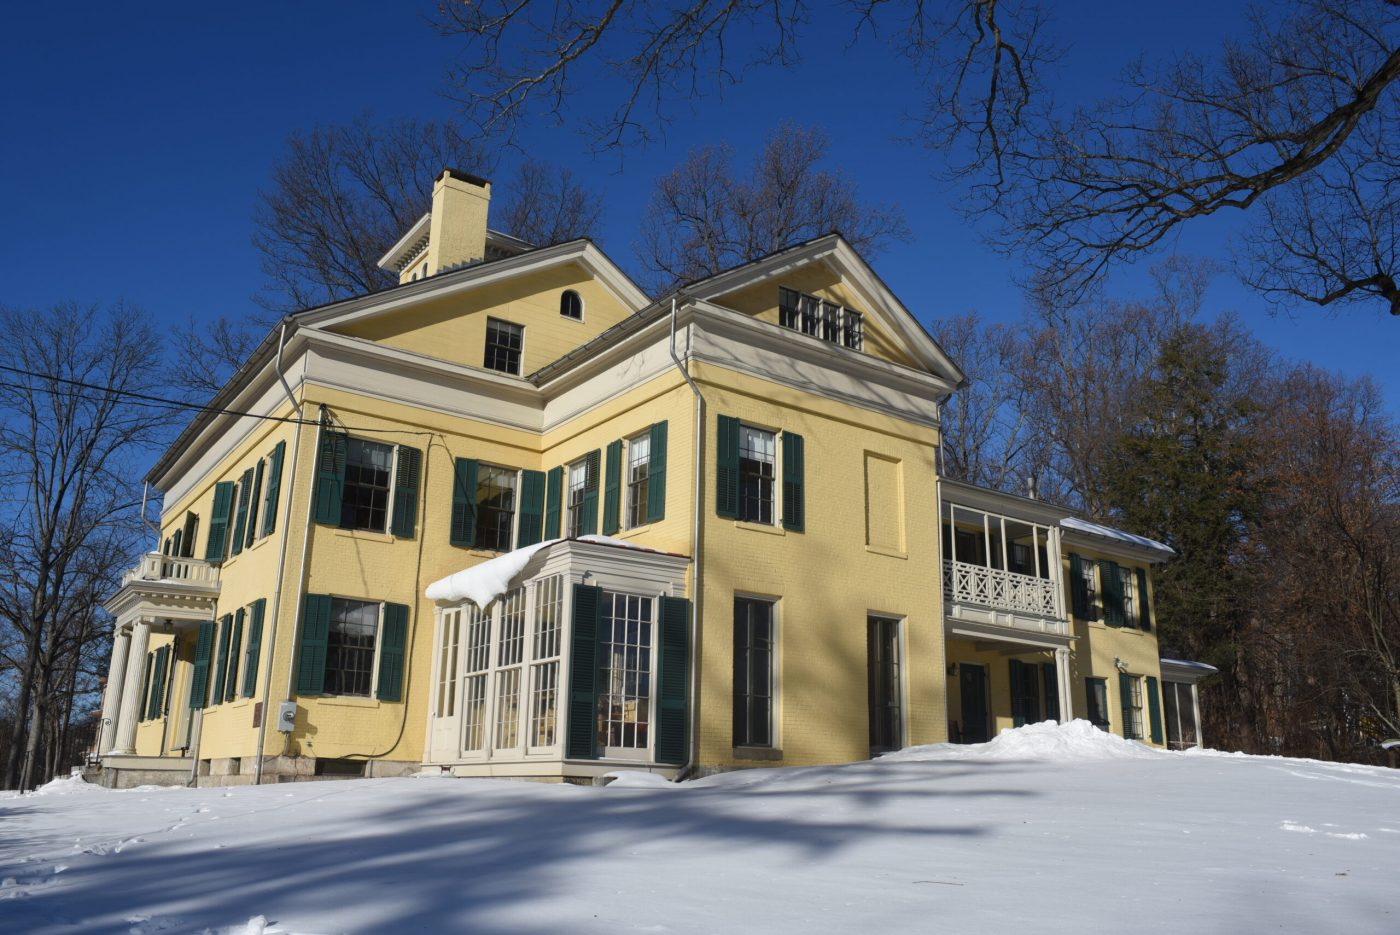 Homestead in the snow